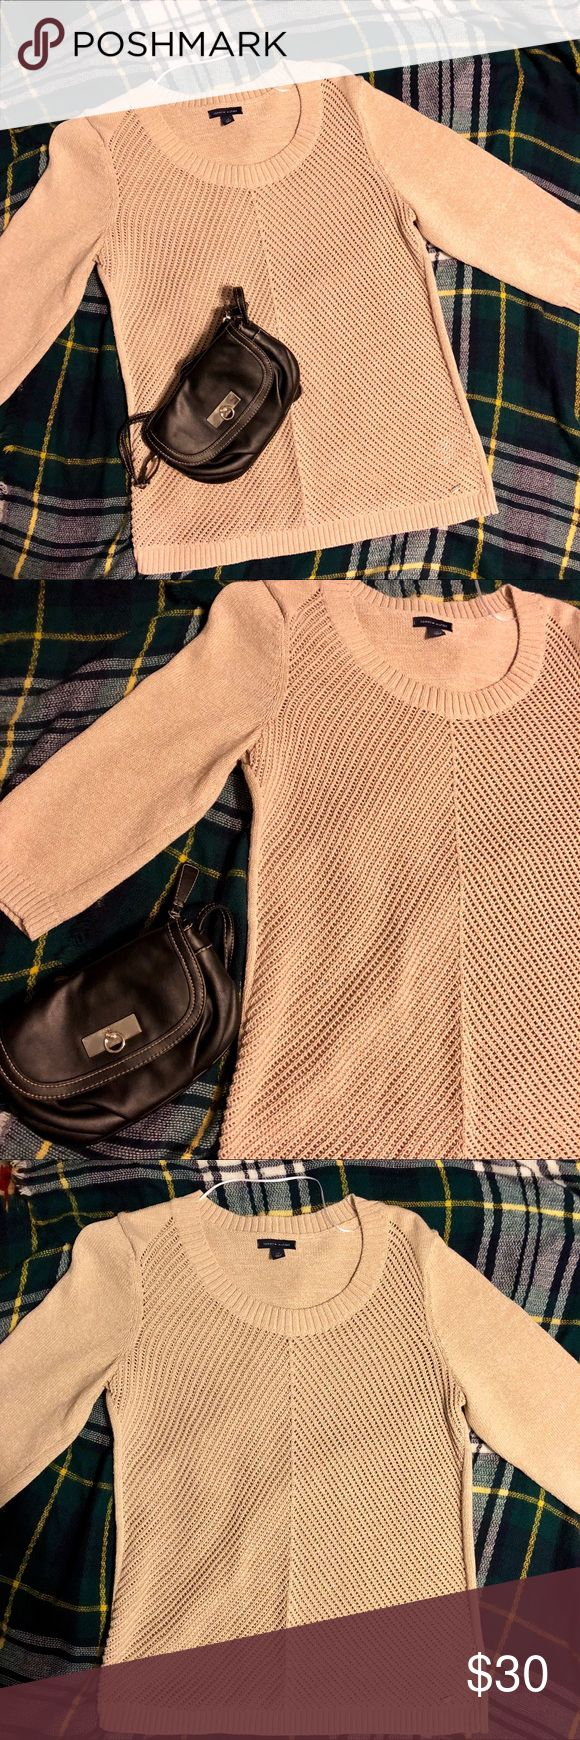 EUC Tommy Hilfiger 3/4 Sleeve Sweater Condition: EXCELLENT (only worn once!) 😱 Imperfections: None ✨ Size: Large 💝 Color: Cream/Beige/Oatmeal 🍾 Sleeve Length: 3/4 Absolutely no rips or stains. Purchased directly from a Tommy Outlet Store (so it's totally legit) and is awesome for any look. I love it, but bought the wrong size 🤷🏼♀️ Feel free to make an offer! ☺️ Tommy Hilfiger Sweaters Crew & Scoop Necks